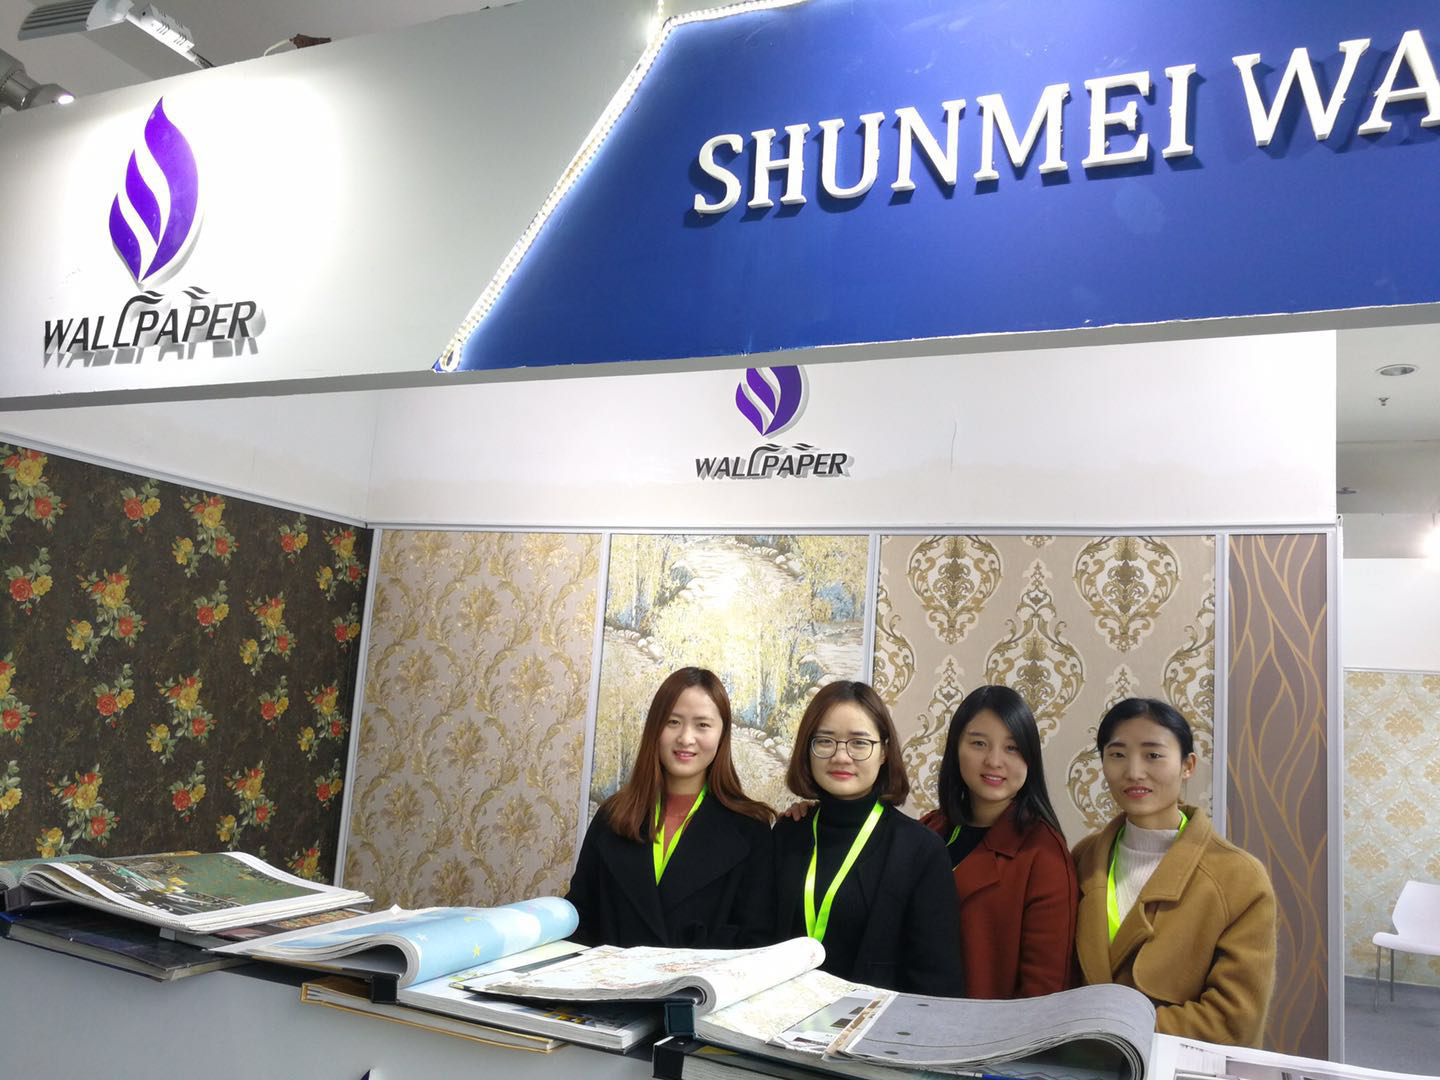 Congradulation Shunmei wallpaper have a great success business in Beijing fair